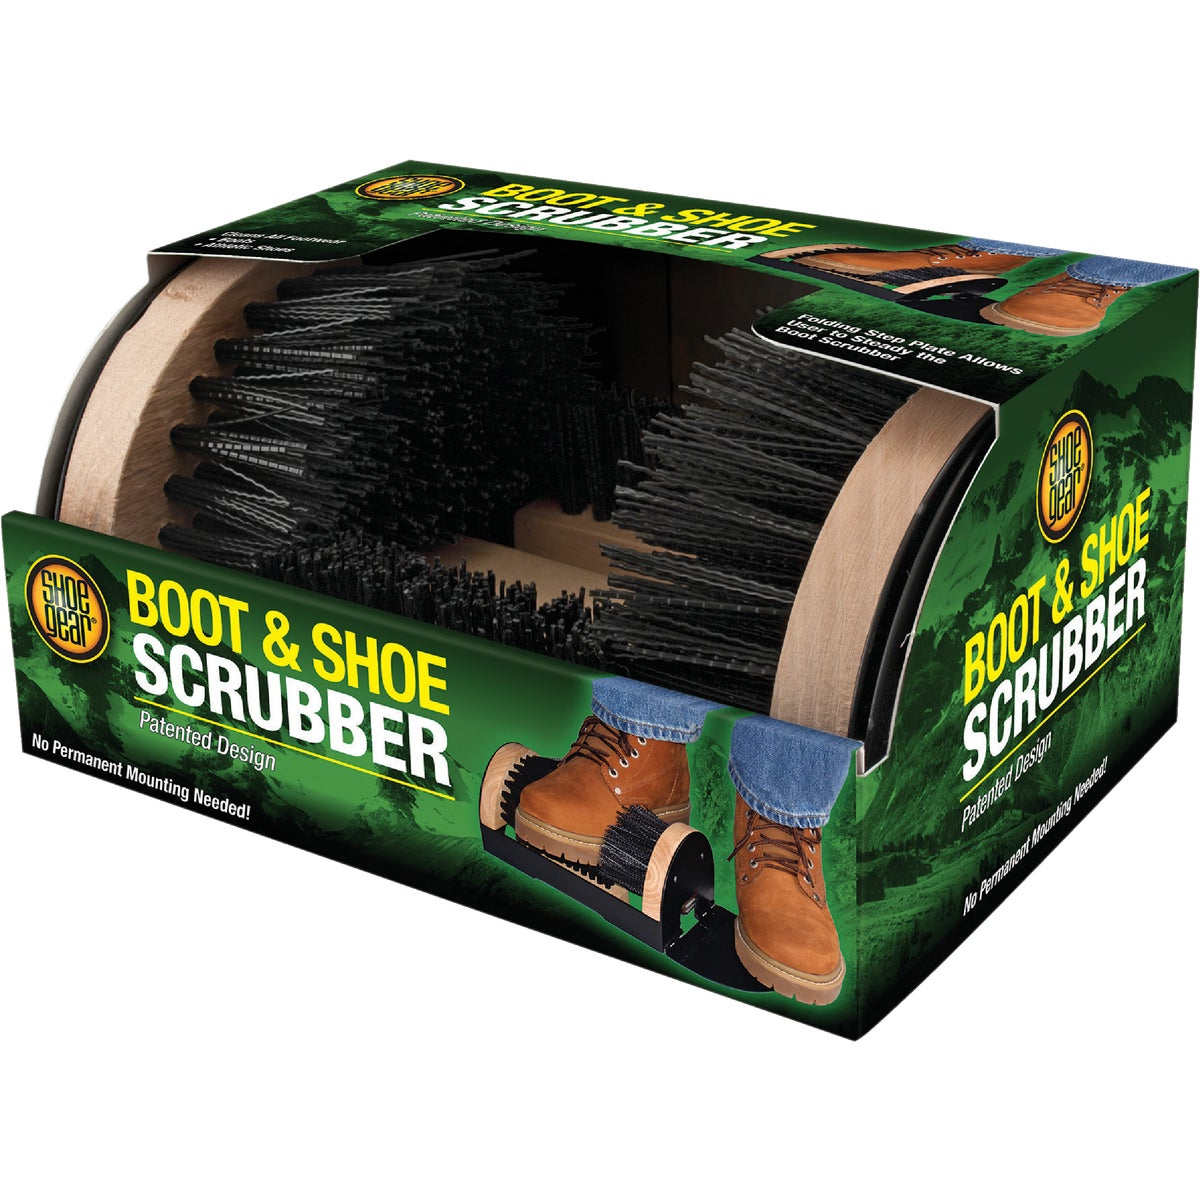 BOOT SCRUBBER/BRUSH - 794-91 by Westminster Pet